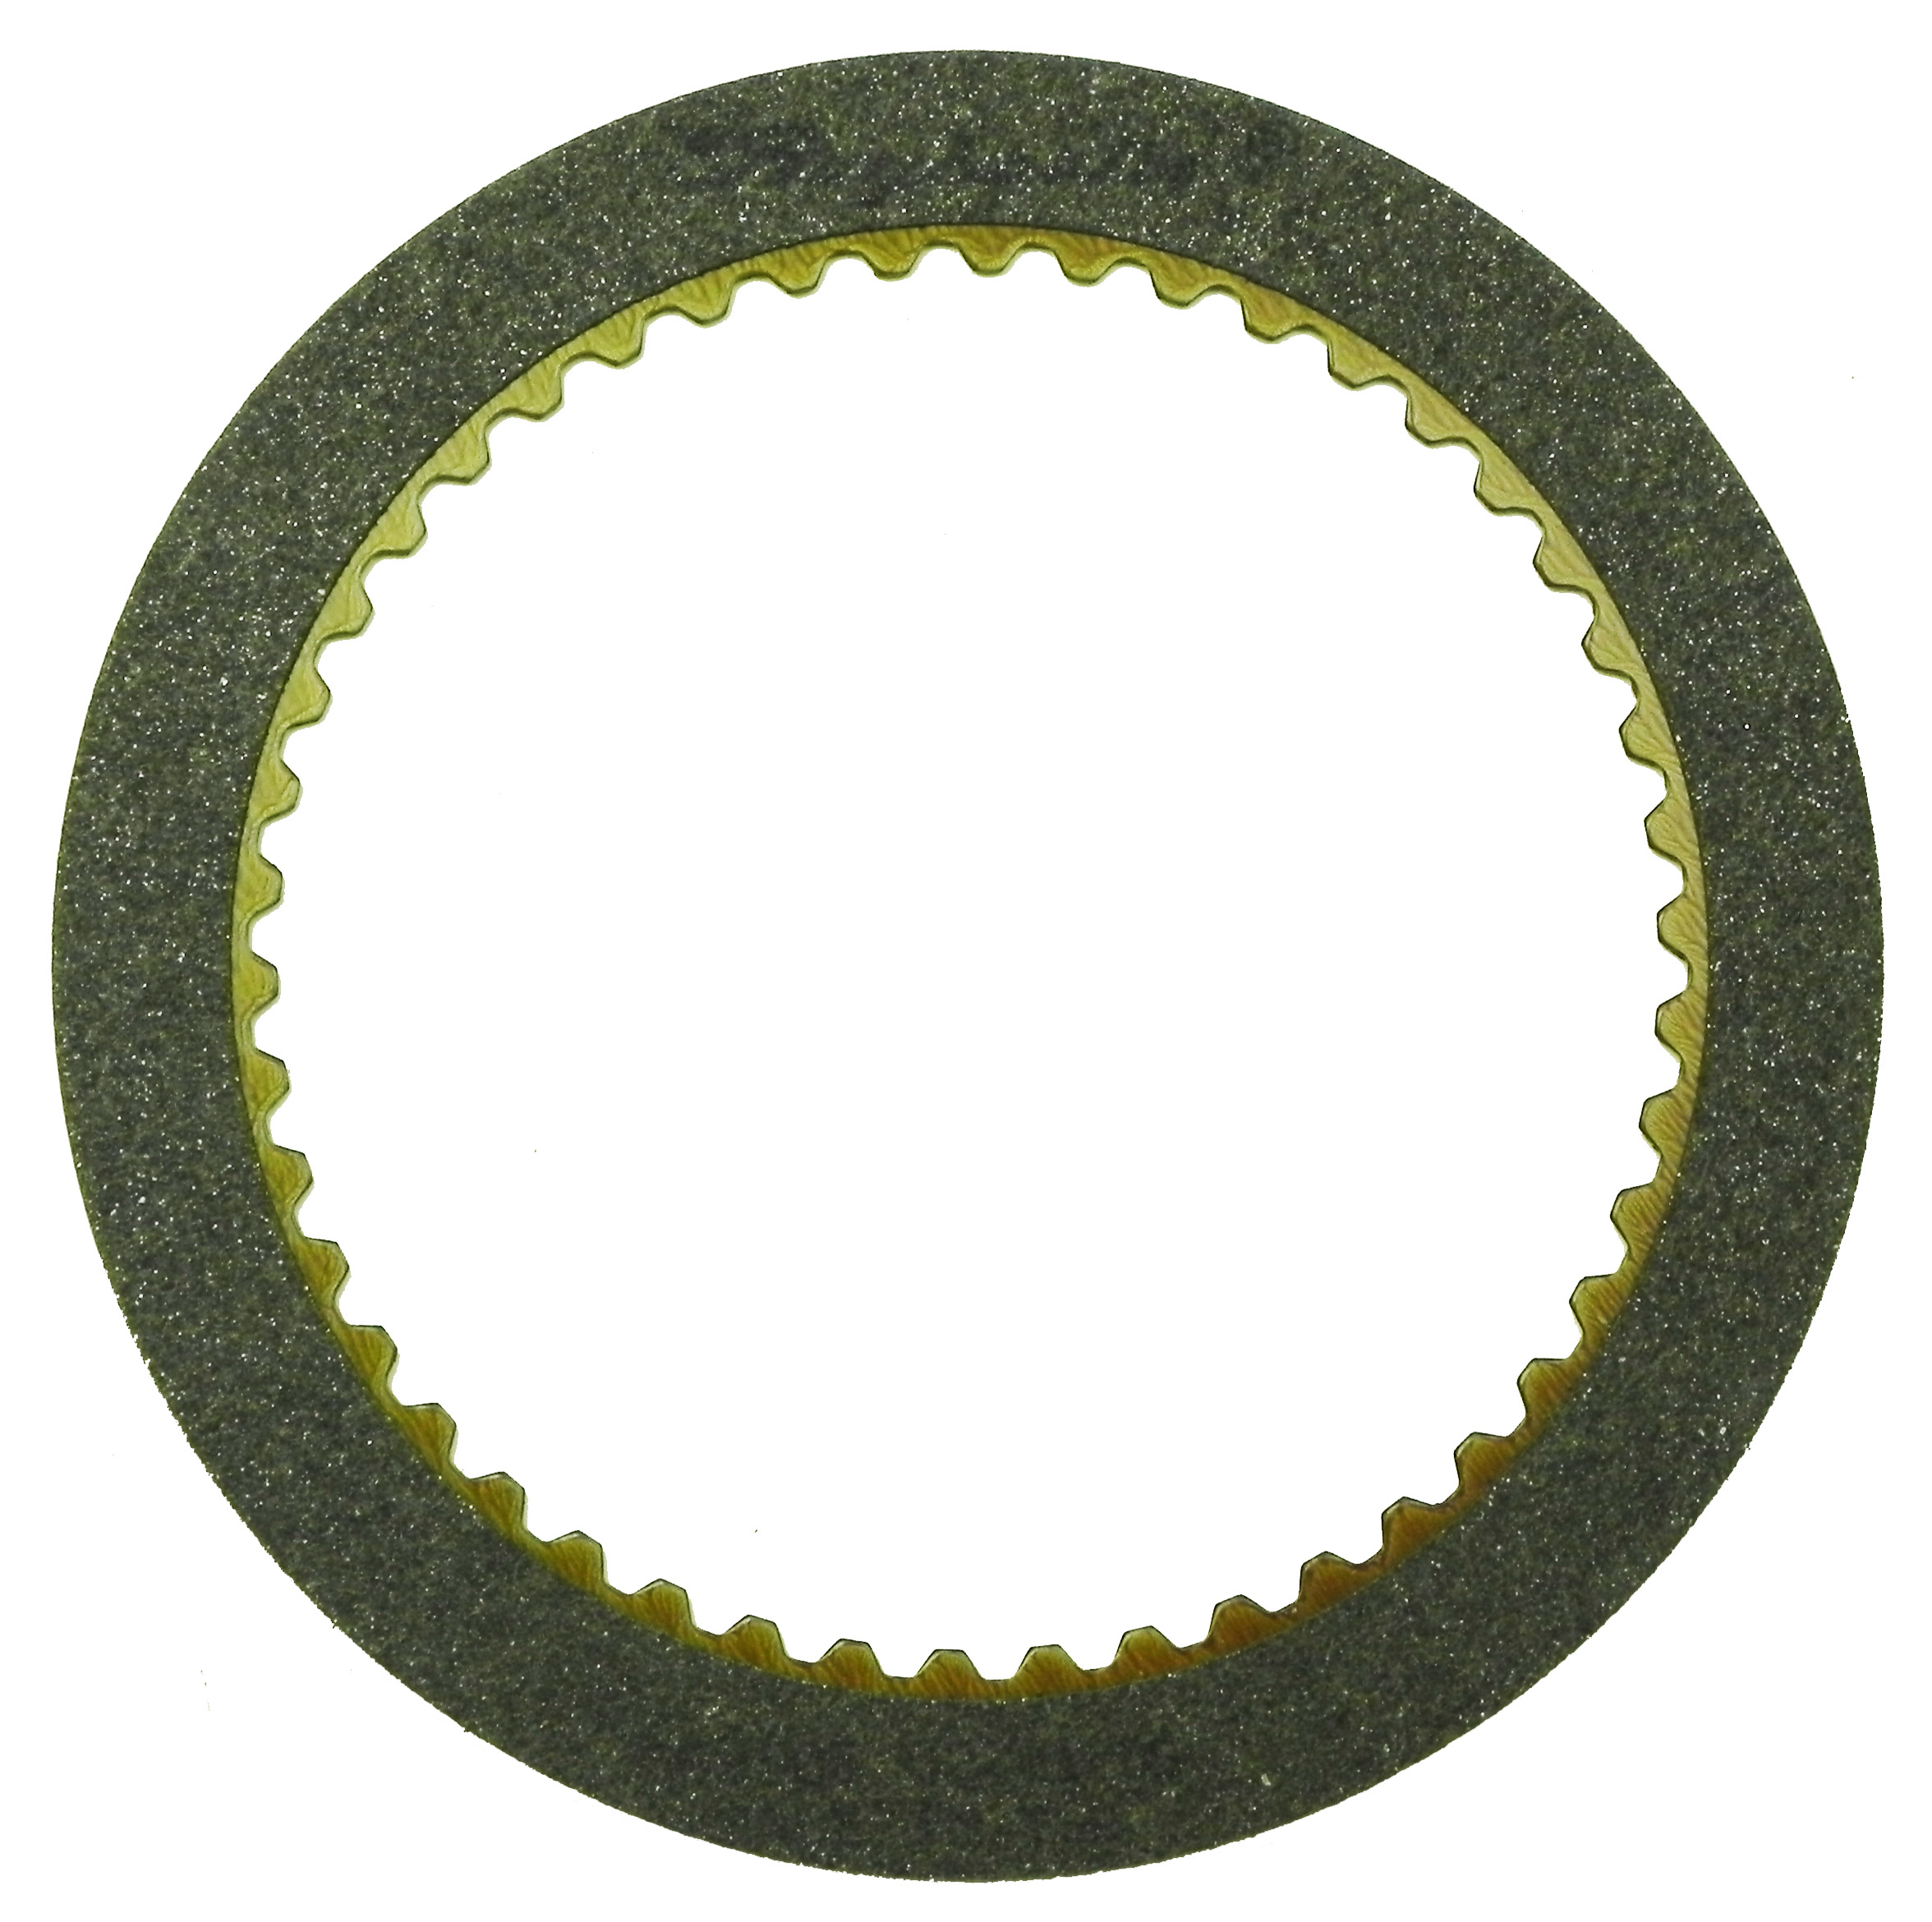 AW450-43LE, ISUZU RNJ High Energy Friction Clutch Plate